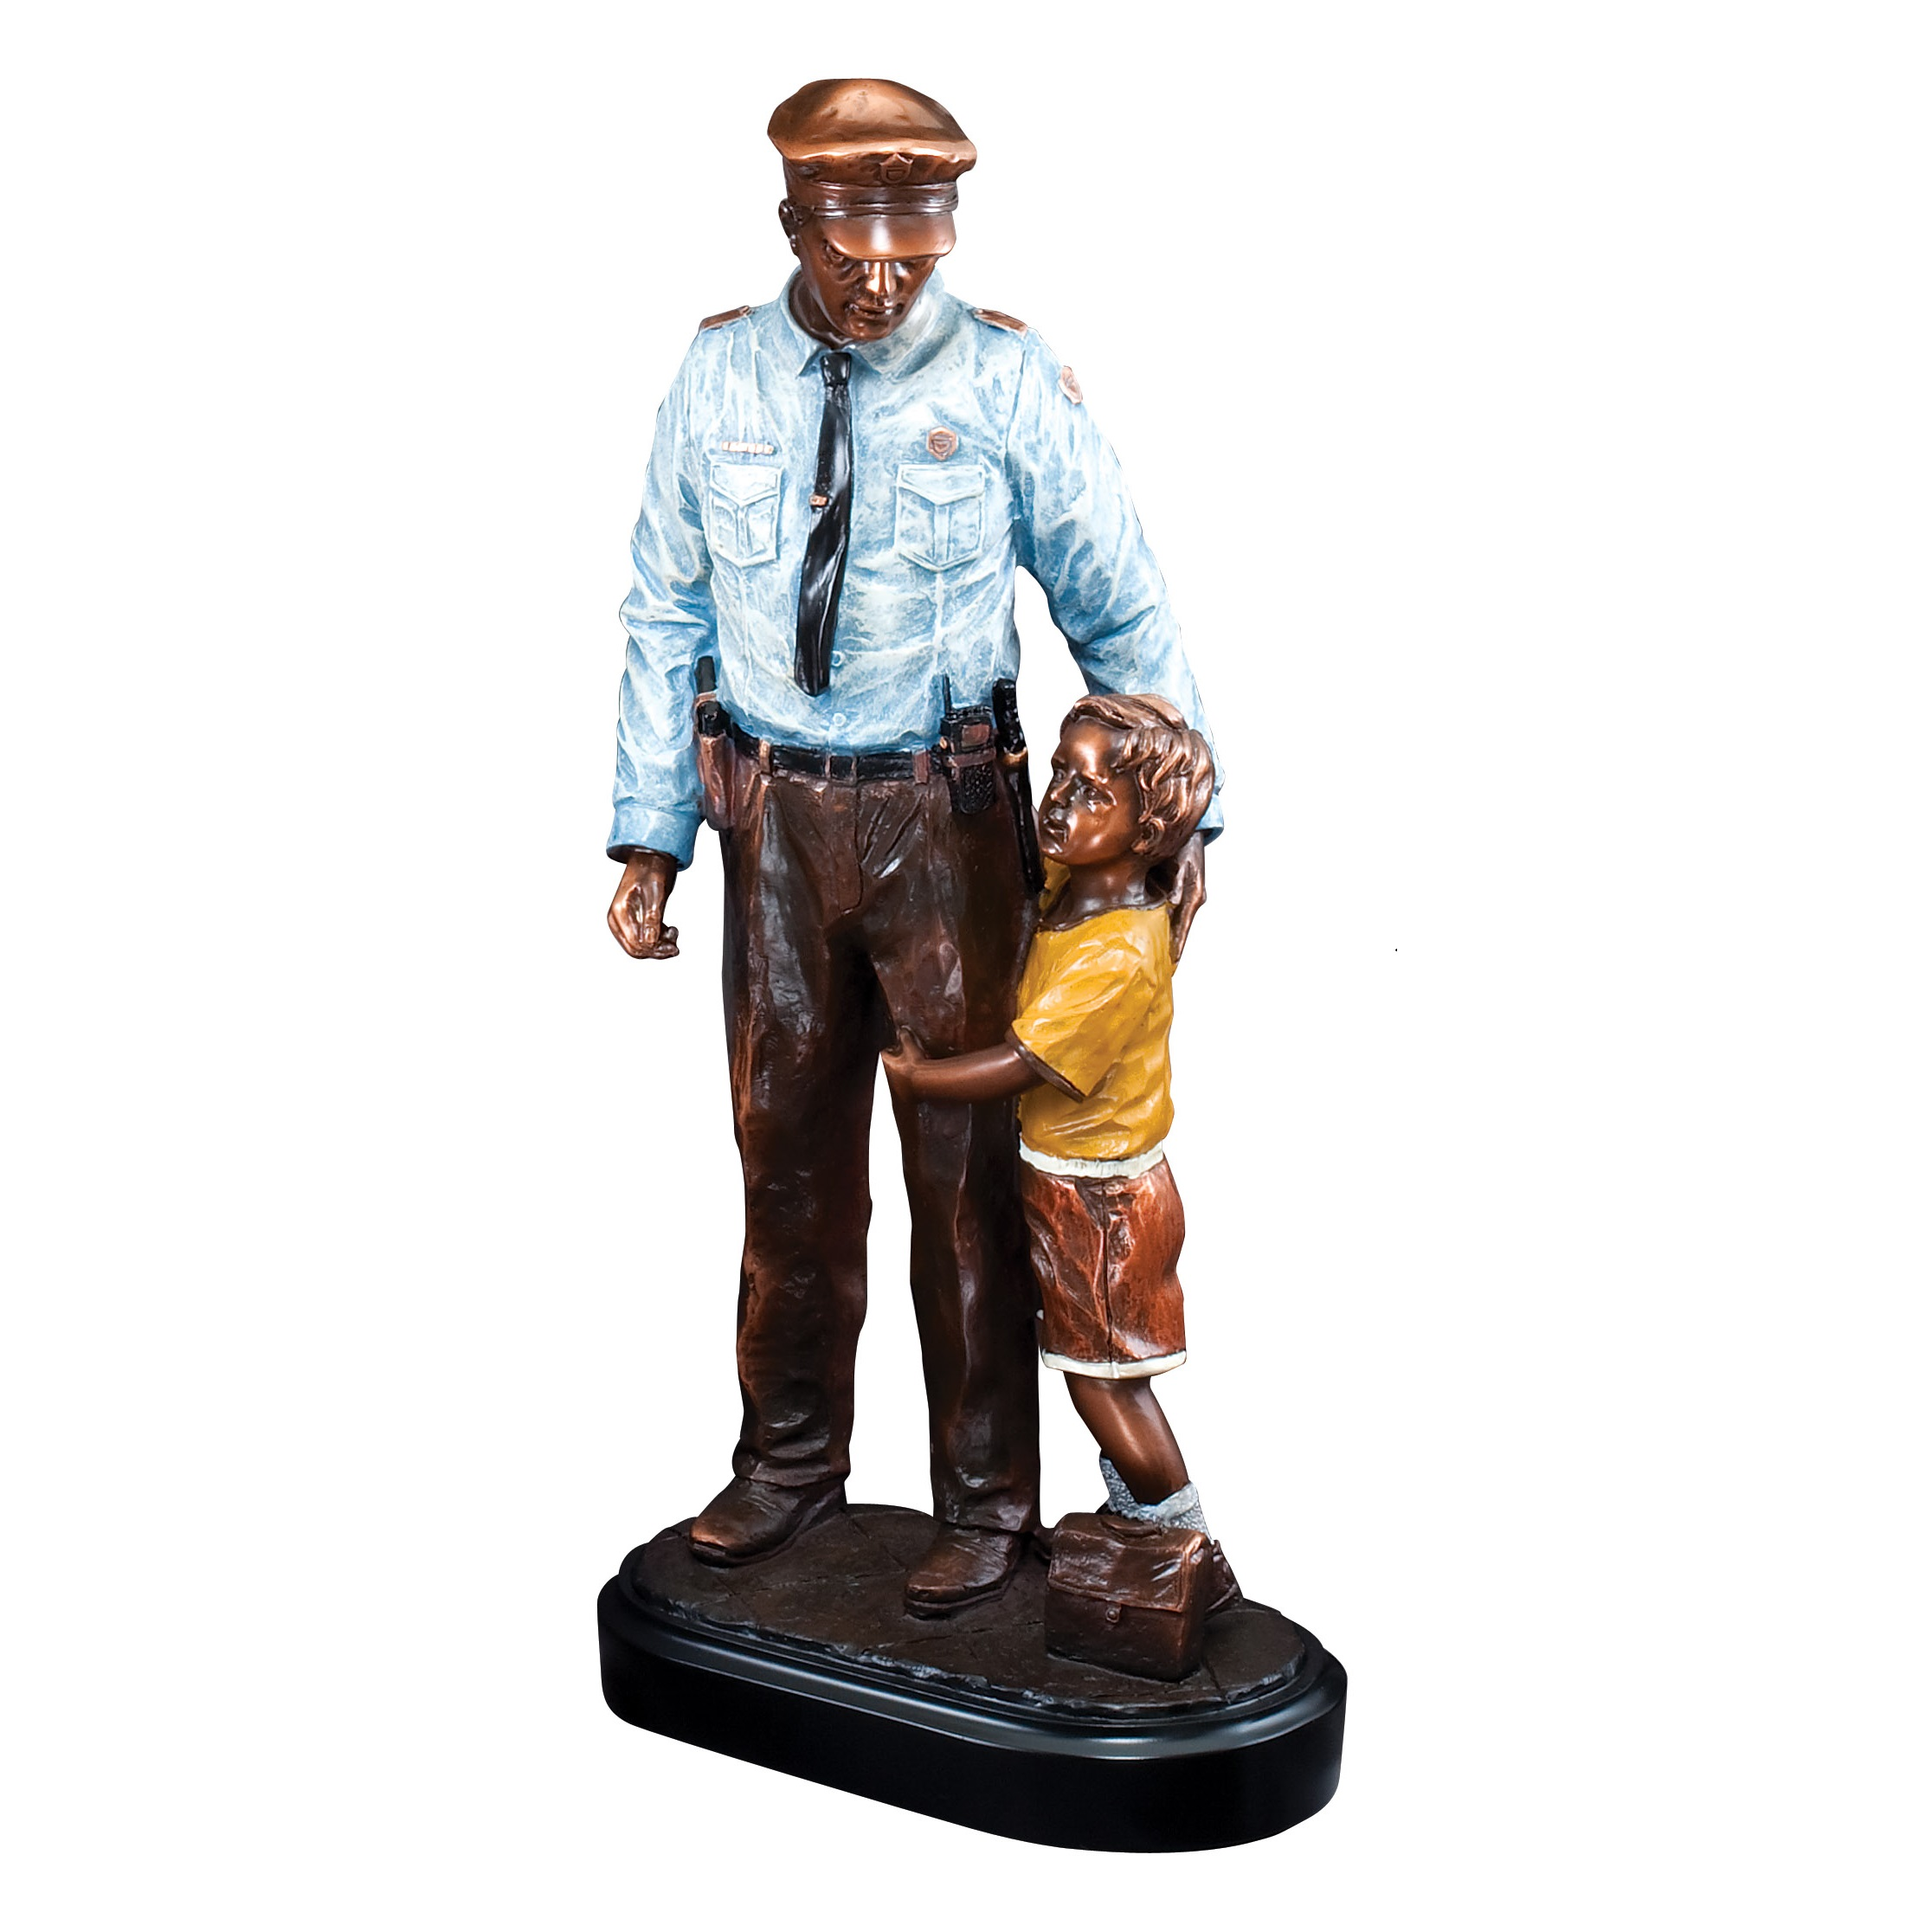 12.5 inch policeman with child sculpture - RFB104